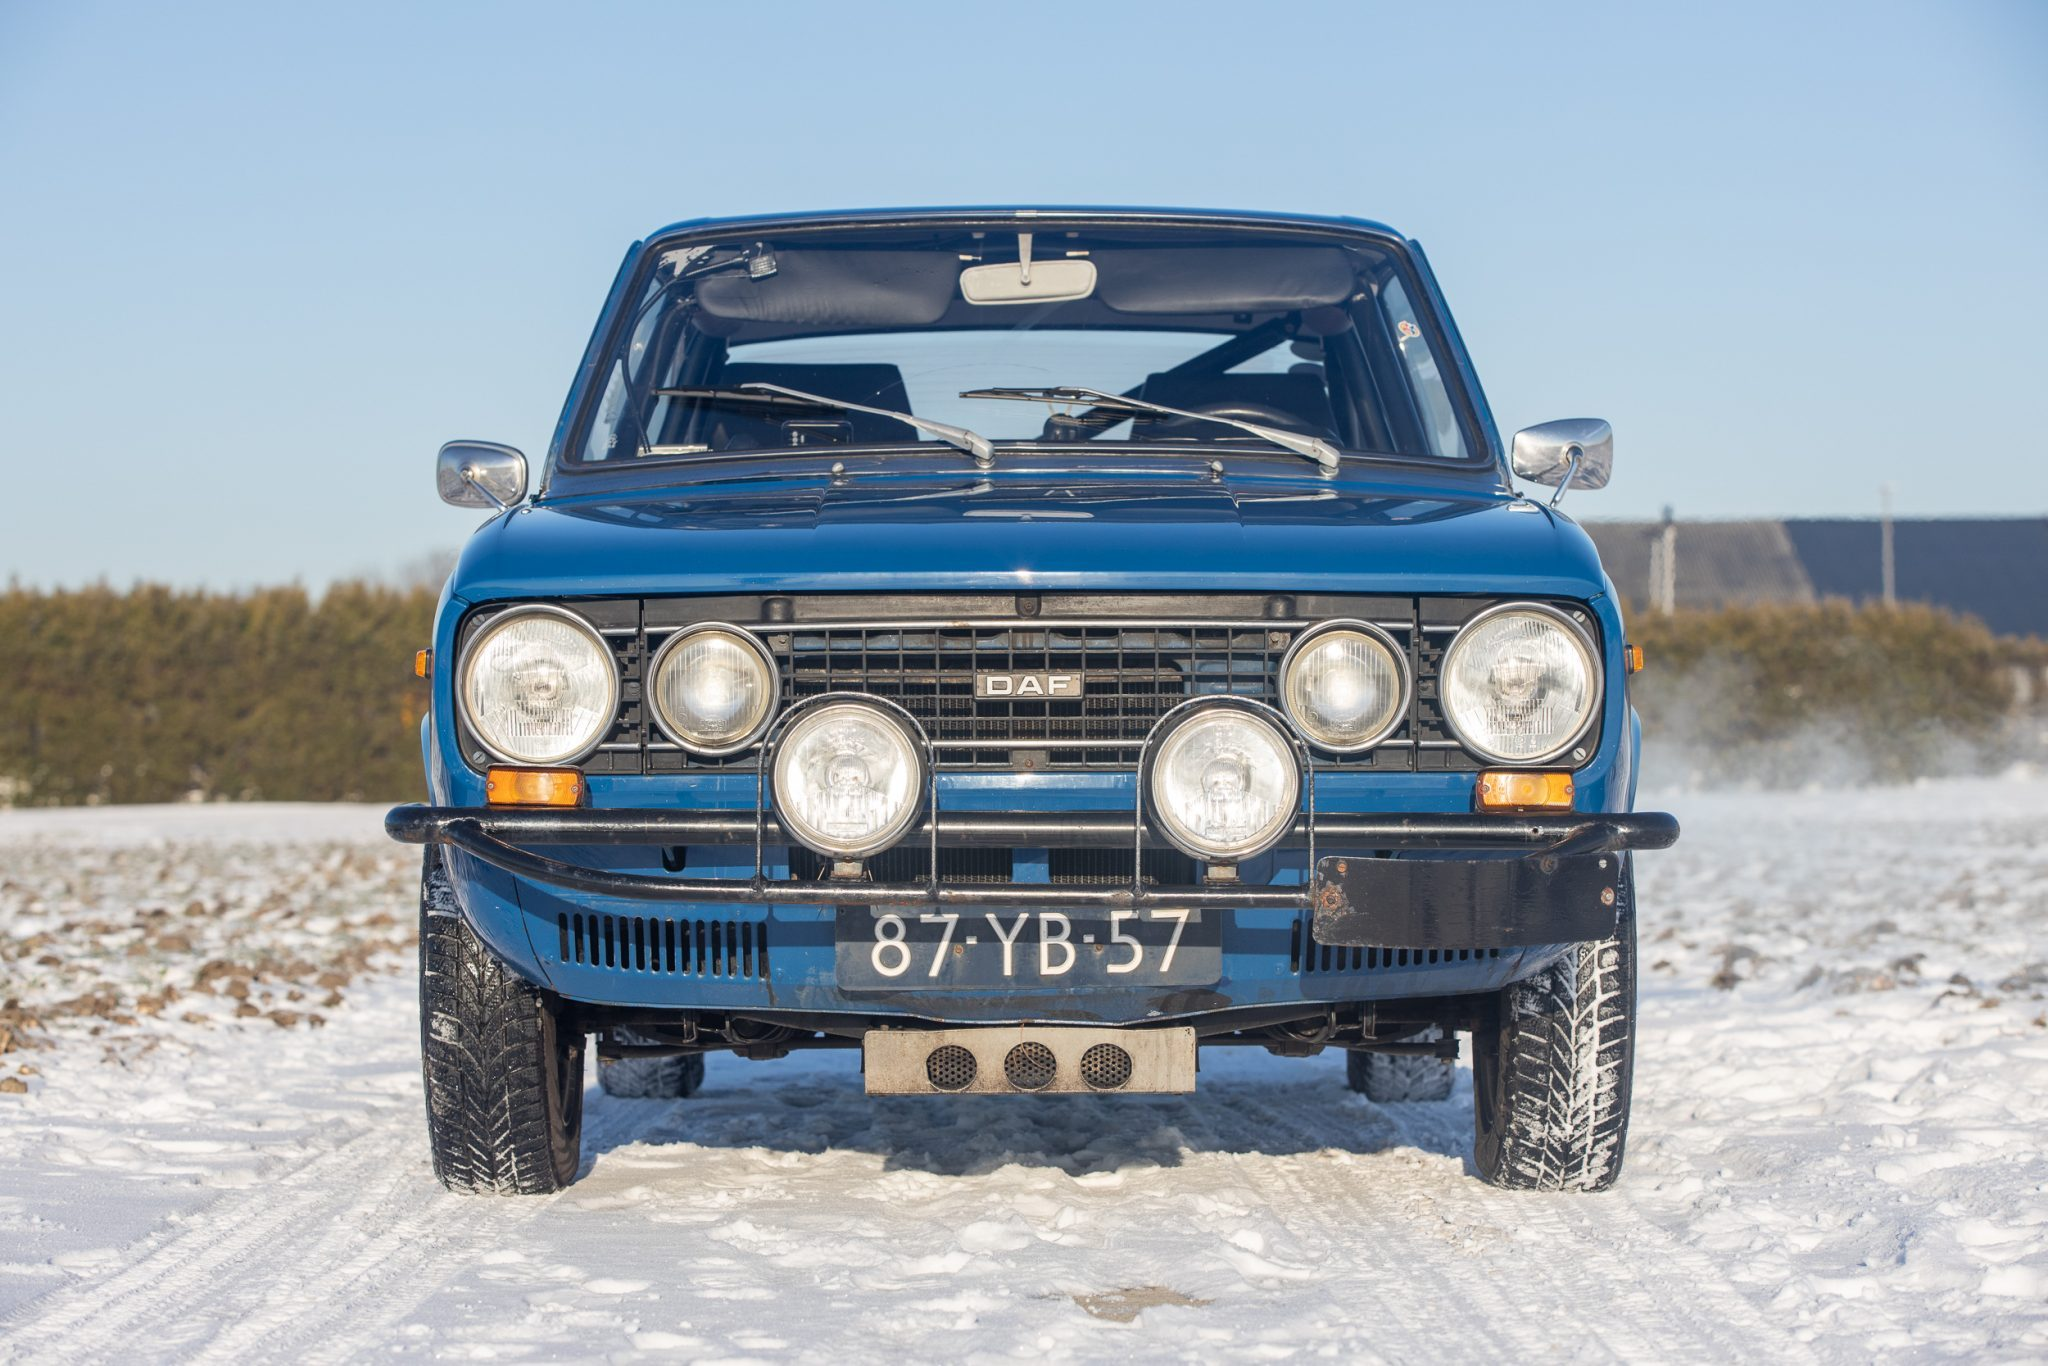 1975 DAF 66 Marathon Coupe Rally Car front